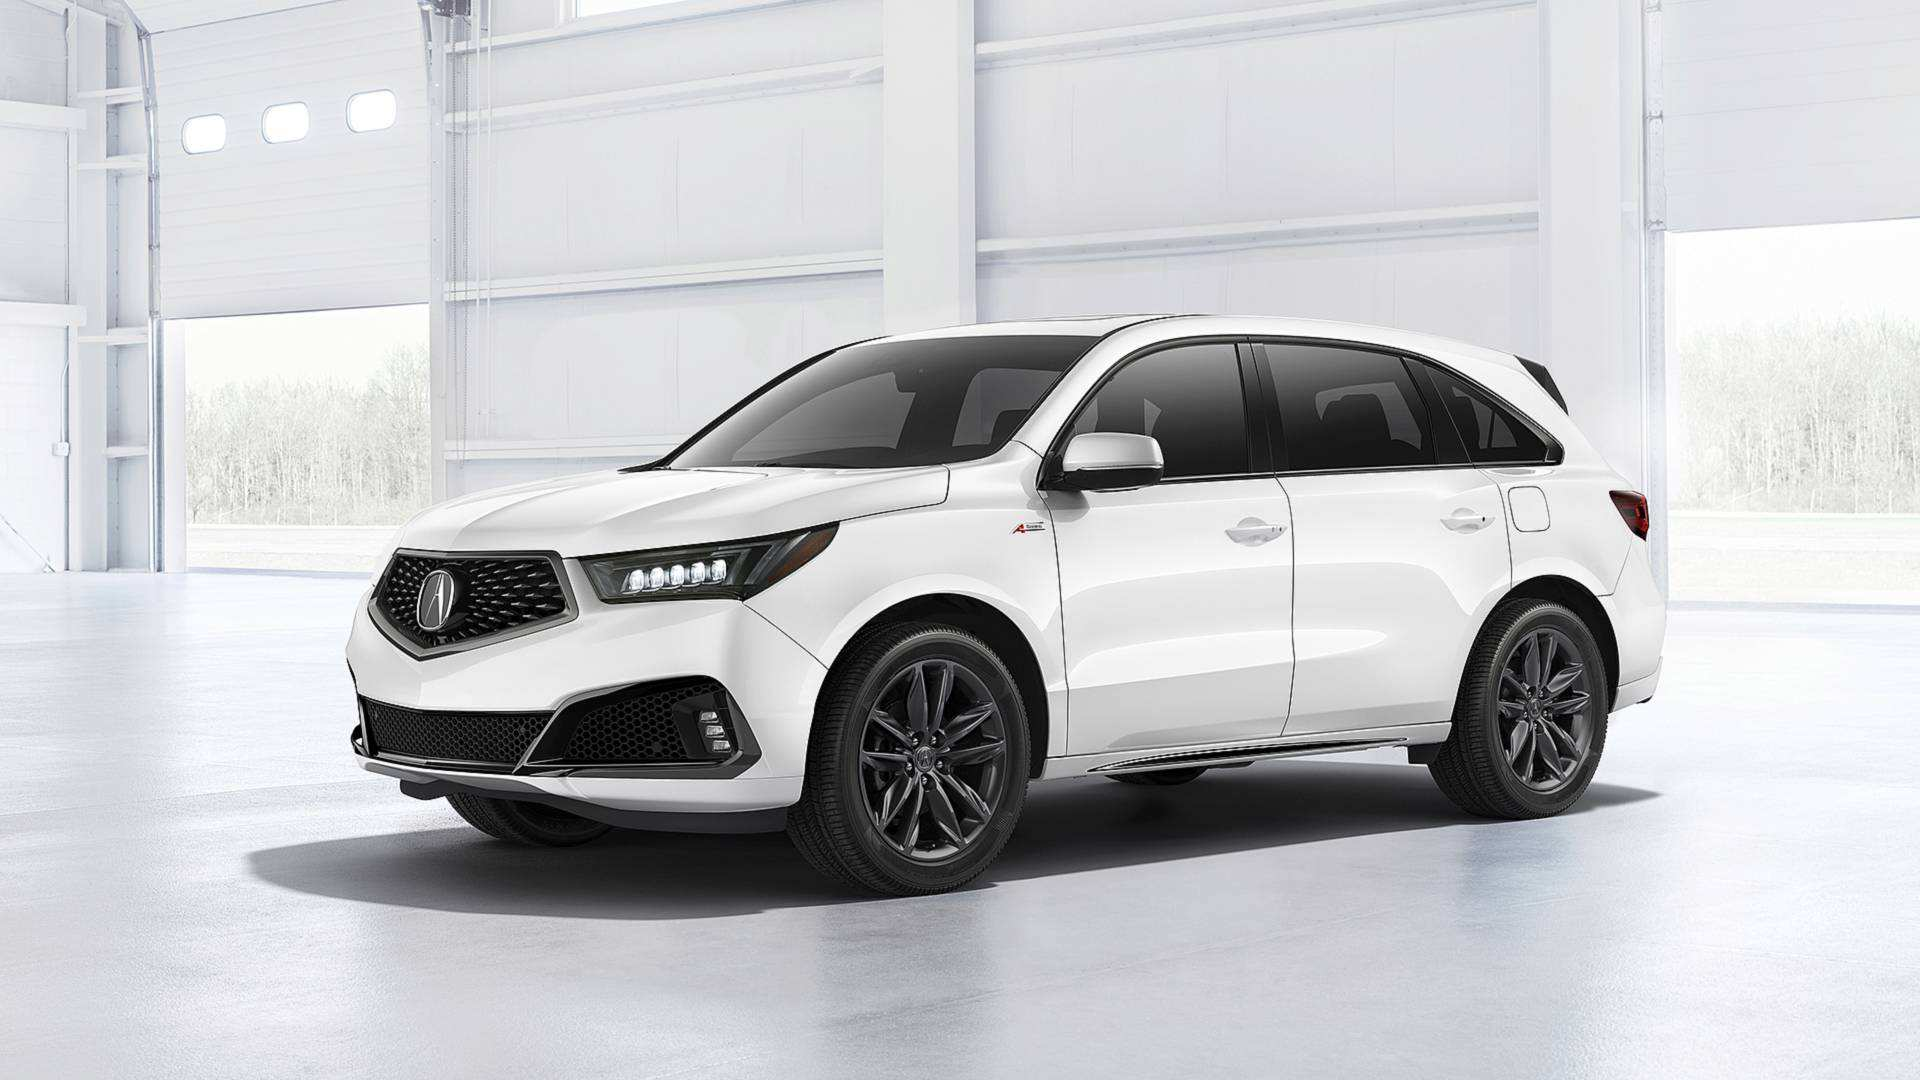 68 Concept of Acura Mdx 2020 Redesign Engine with Acura Mdx 2020 Redesign